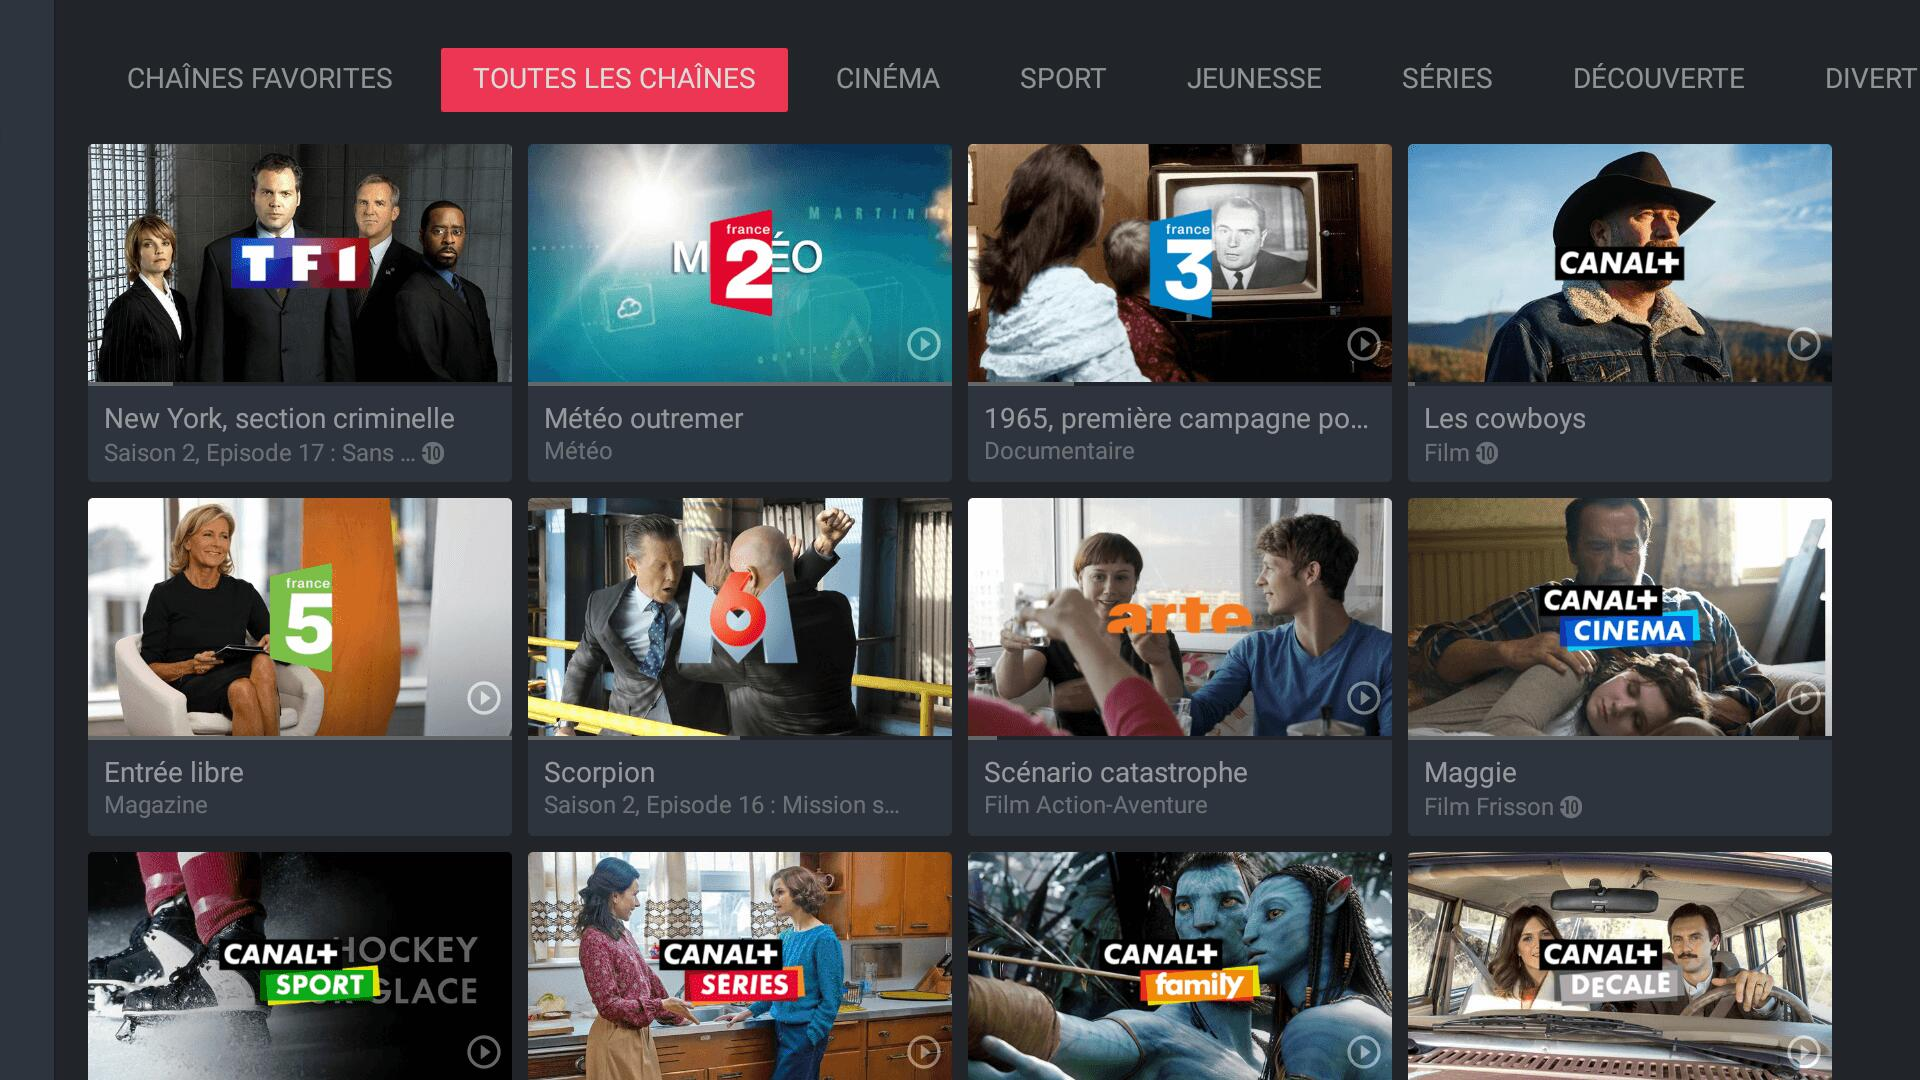 HD World IPTV With +9200 Live TV, + 5600 Video-On-Demand And Smart EPG TV Guide。